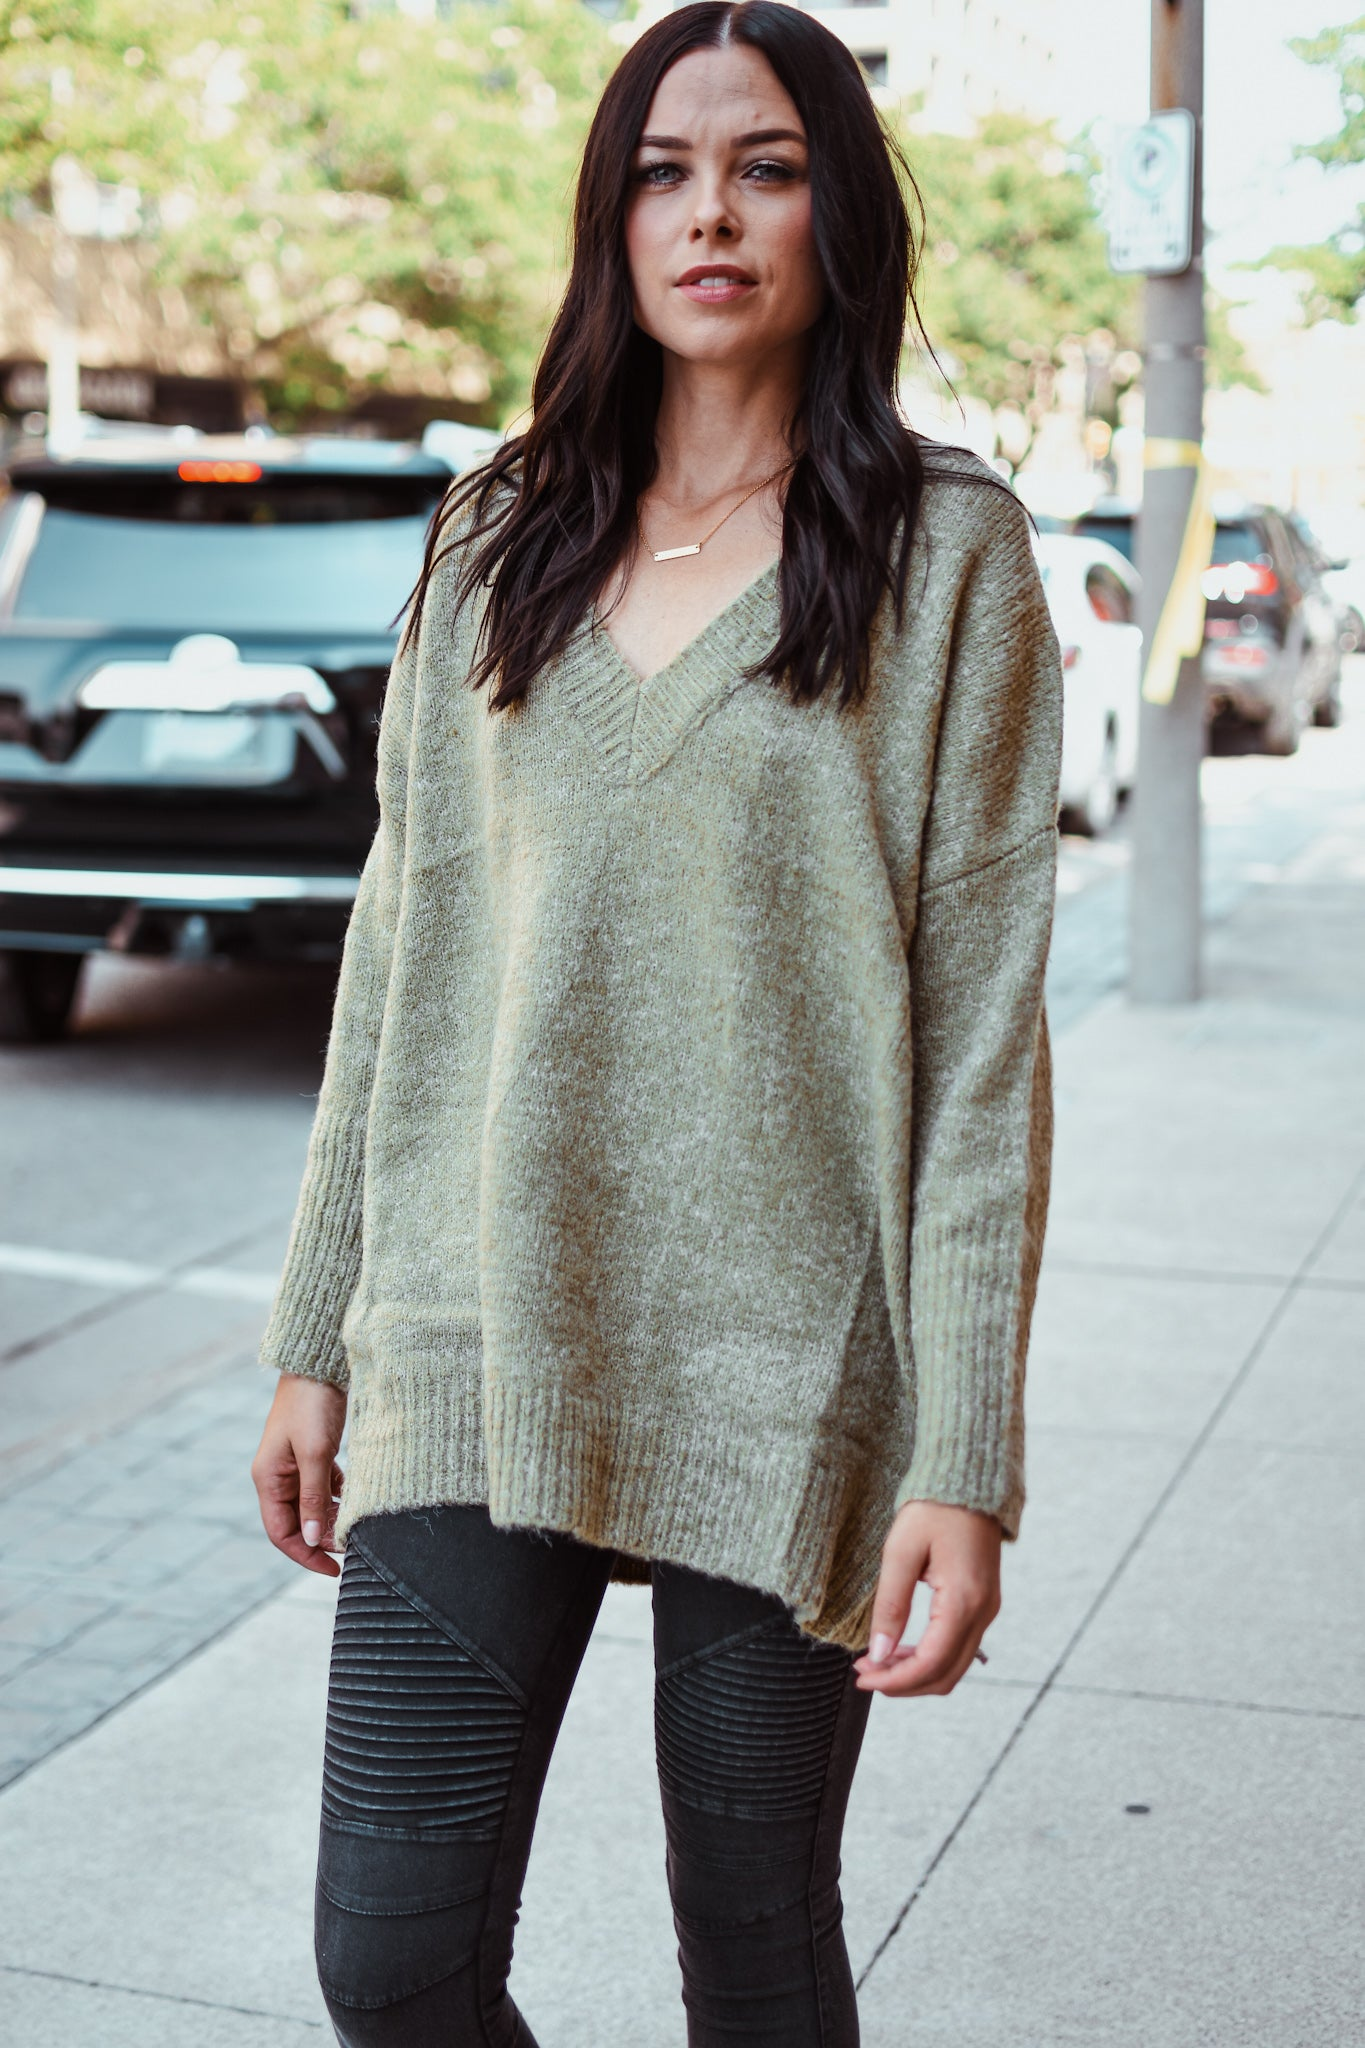 xSOLD OUTx Apple Picking Dolman Sleeve V-Neck Sweater in Olive